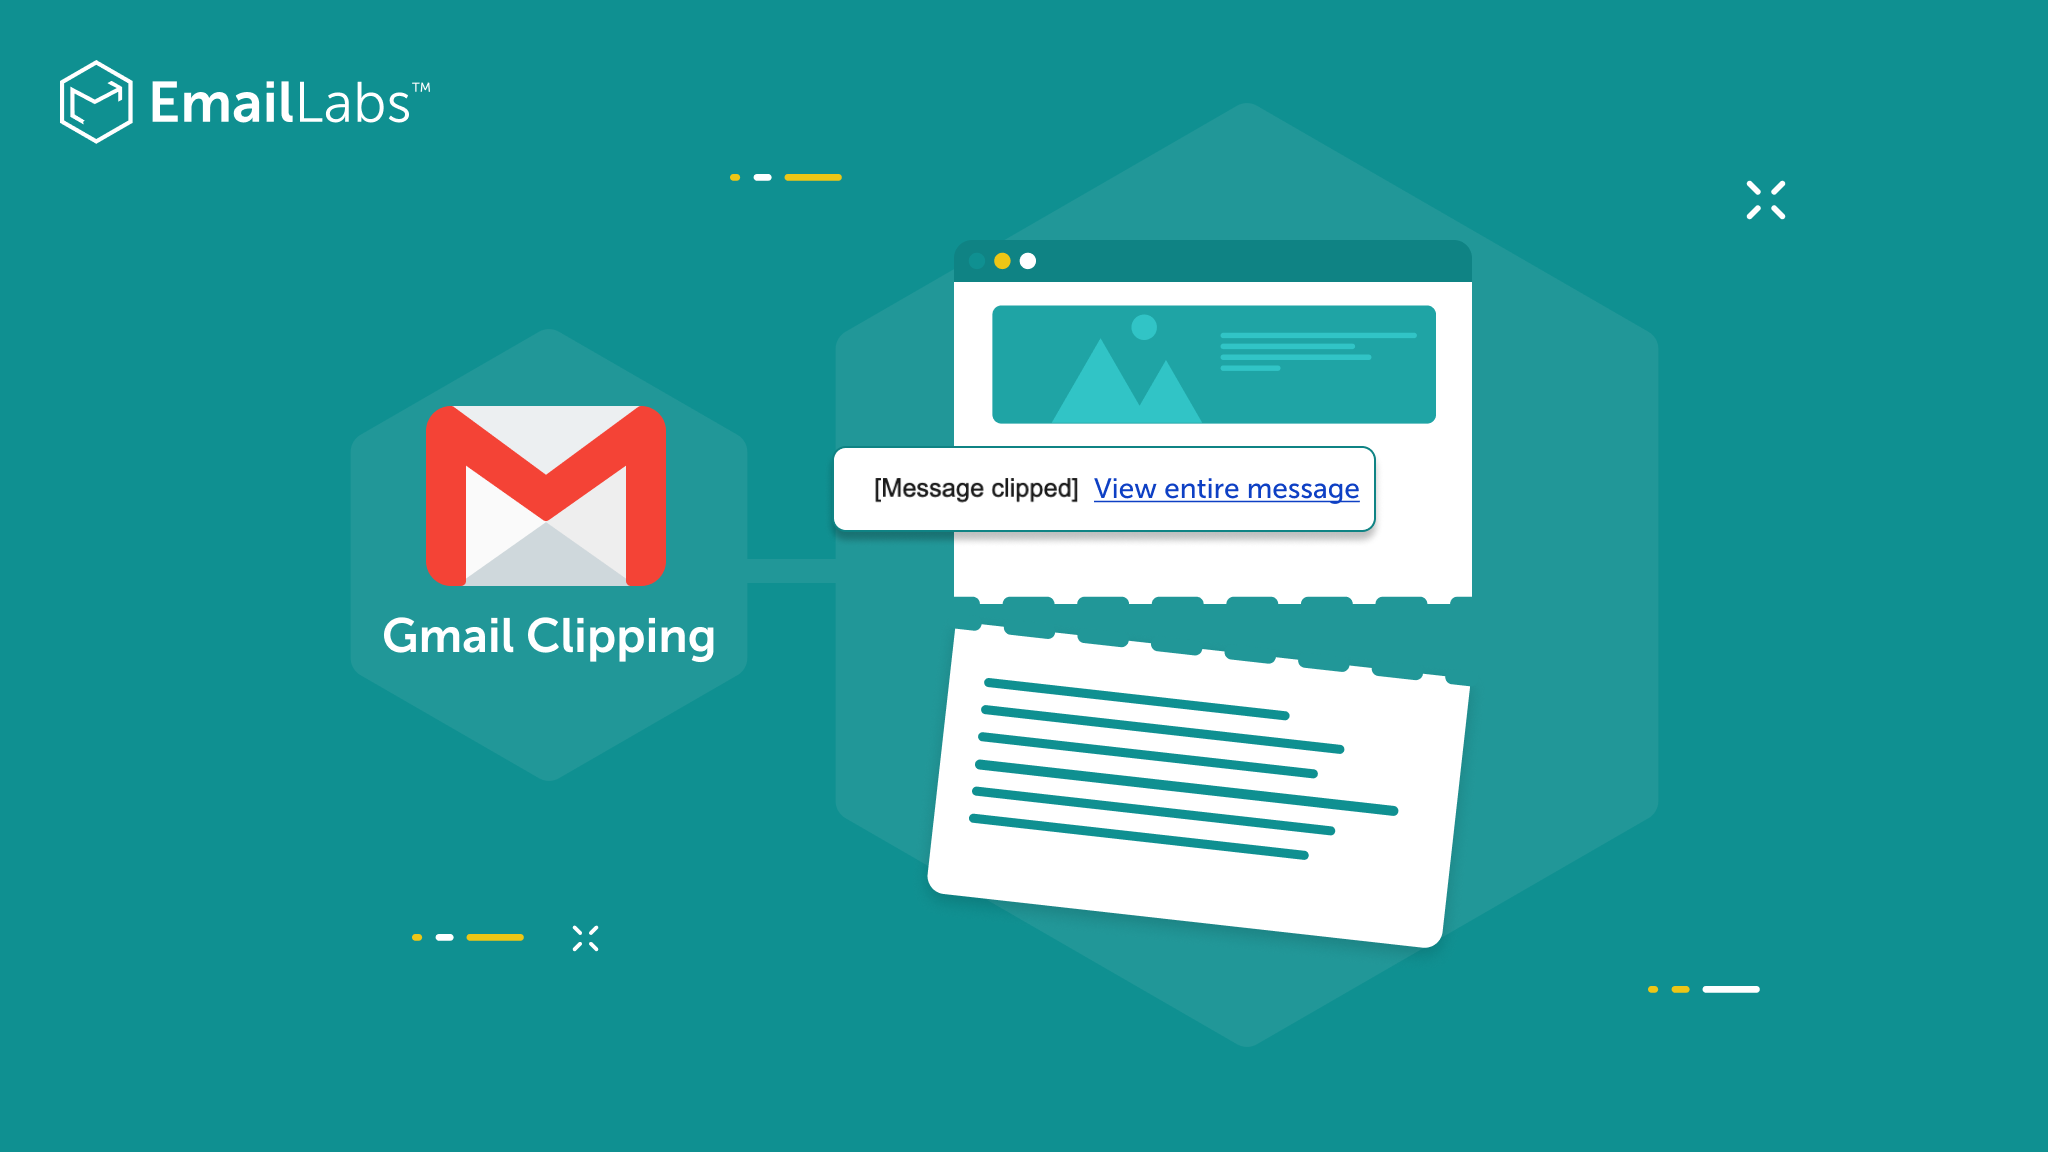 Gmail: How to prevent email clipping?